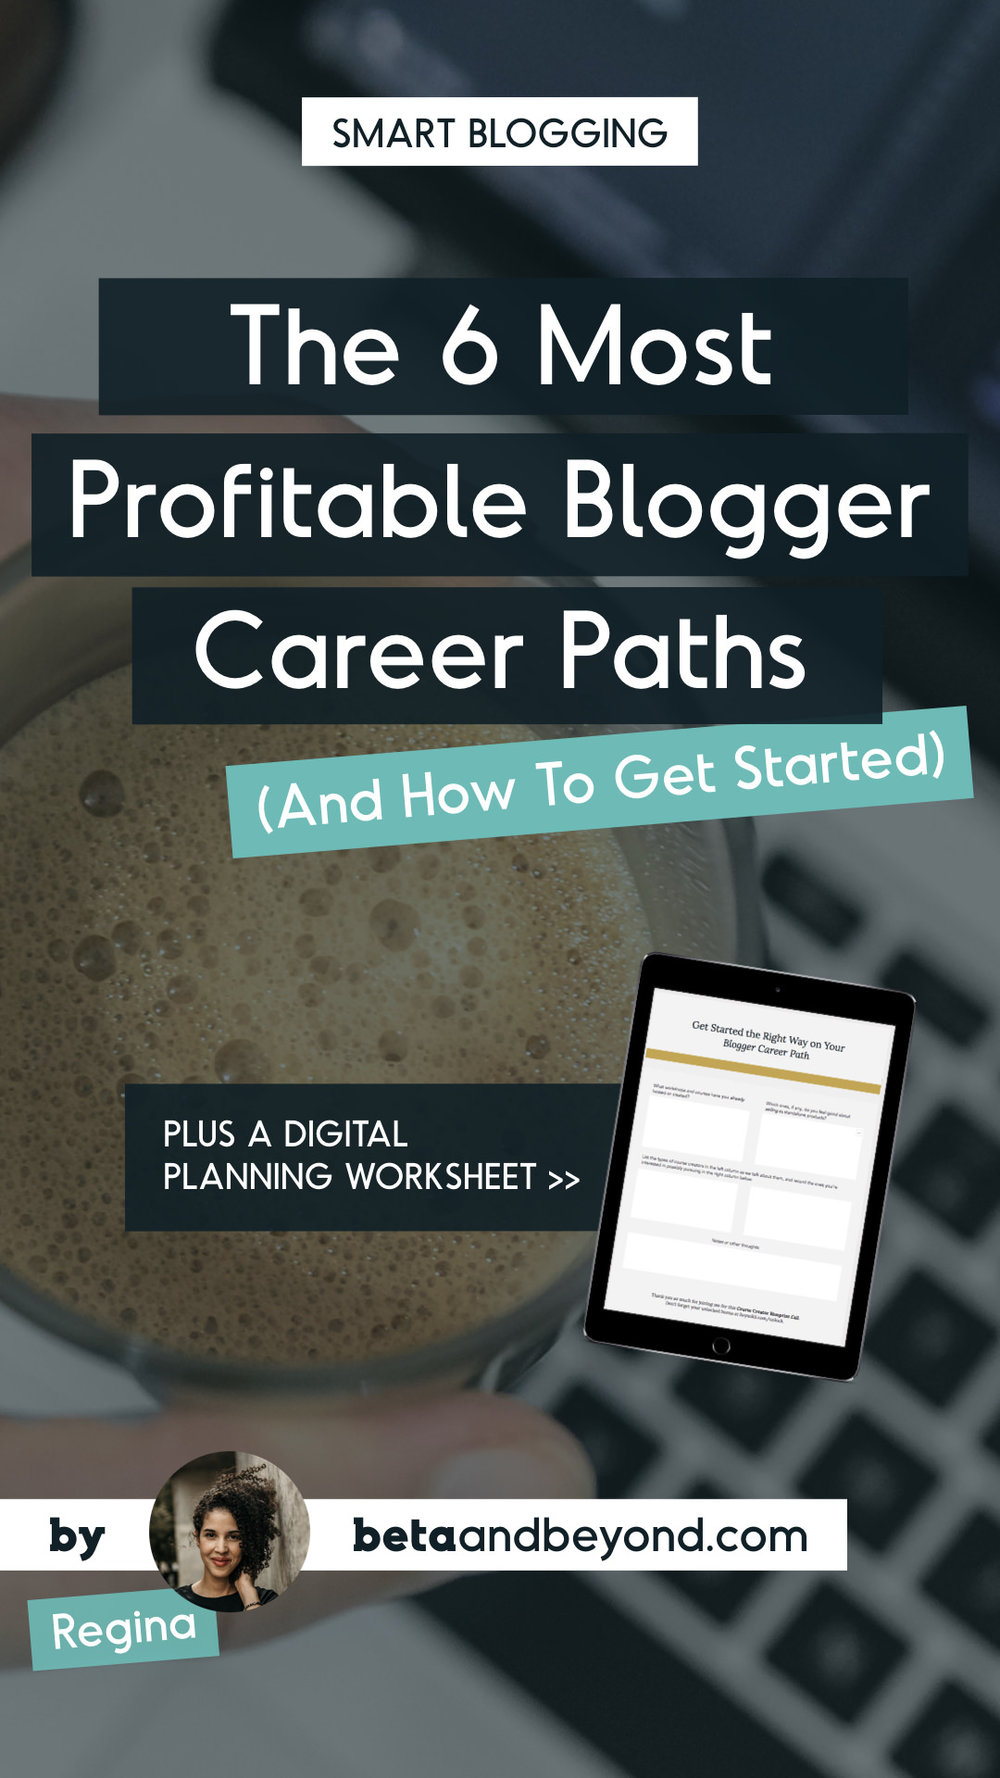 6 most profitable blogger career paths.jpeg